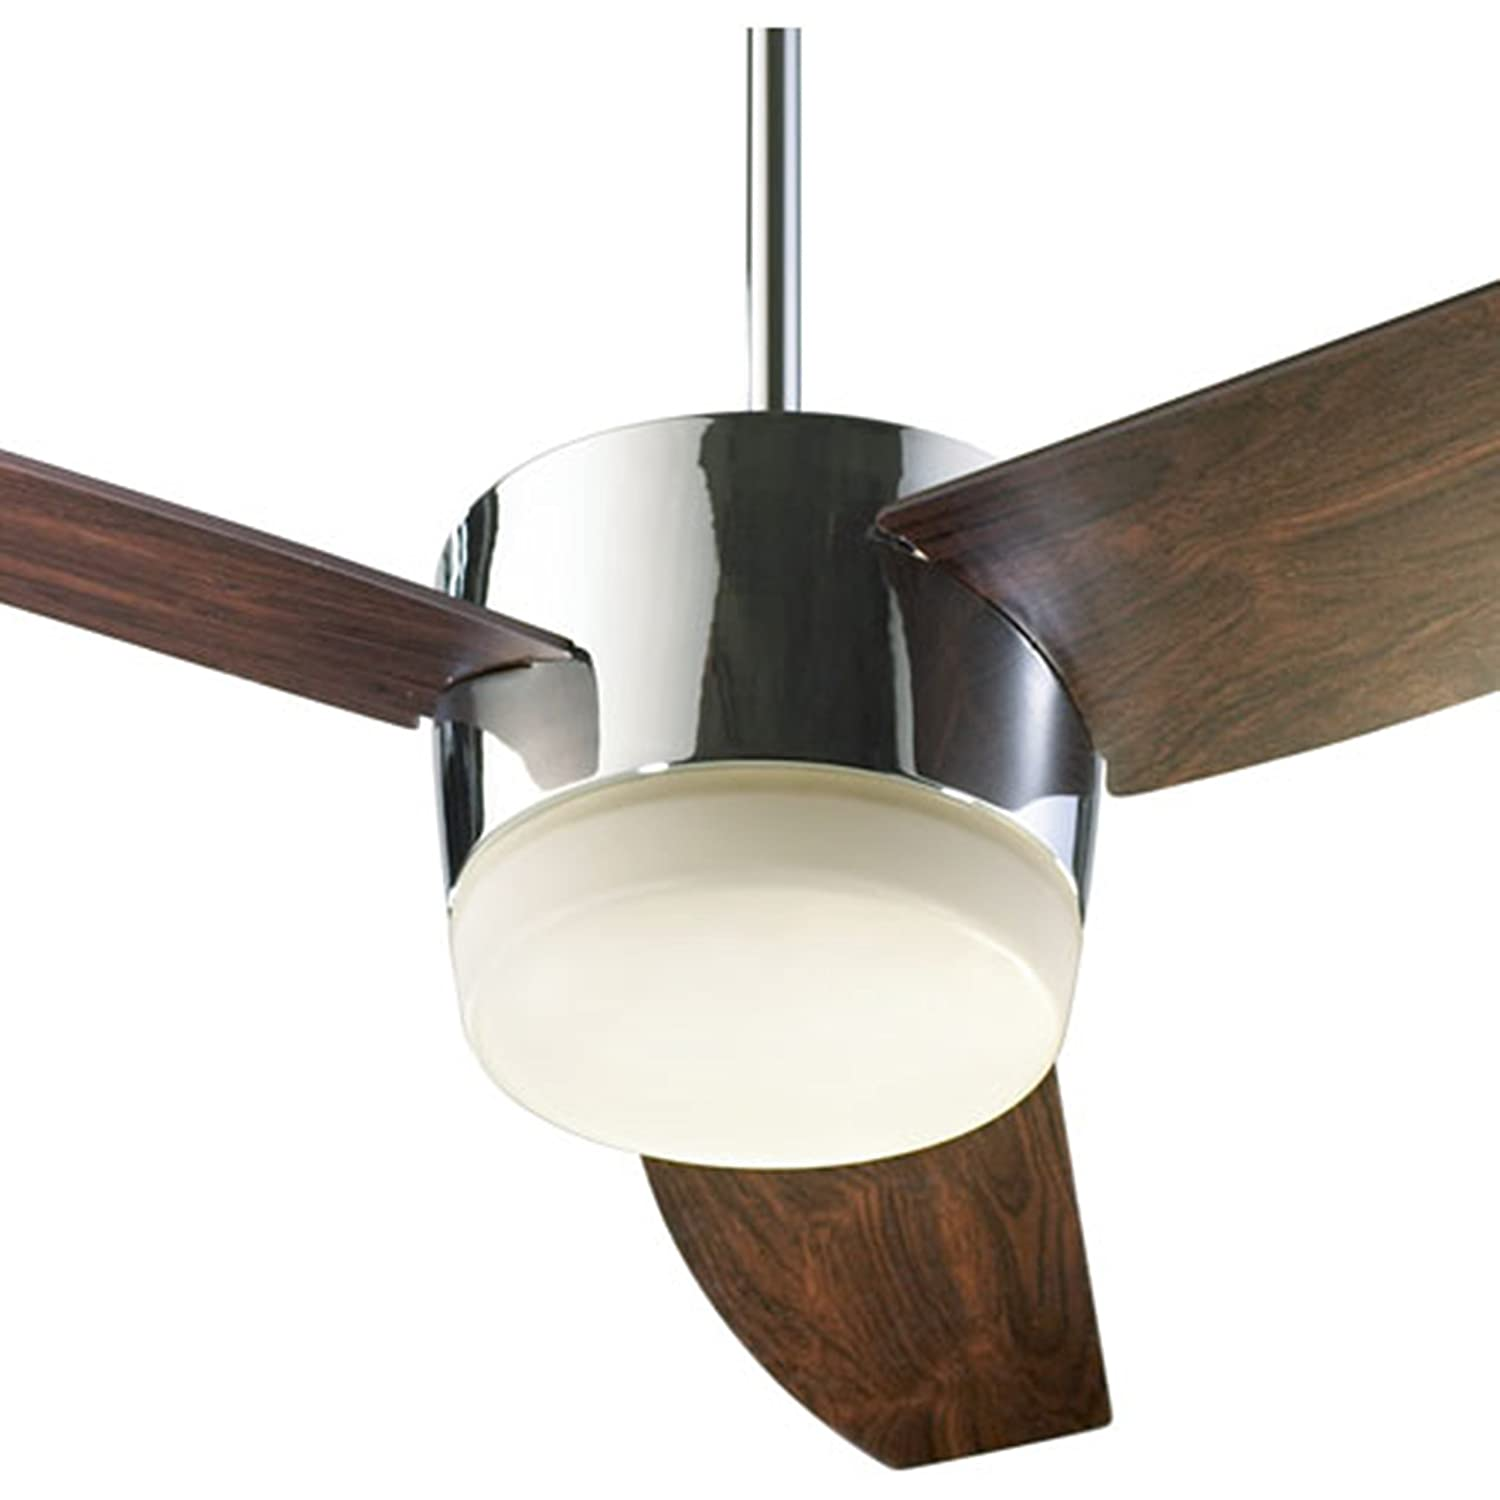 71Otnx1lT6L._SL1500_ quorum international 20543 914 trimark 54 inch ceiling fan, chrome quorum windmill ceiling fan wiring diagram at virtualis.co